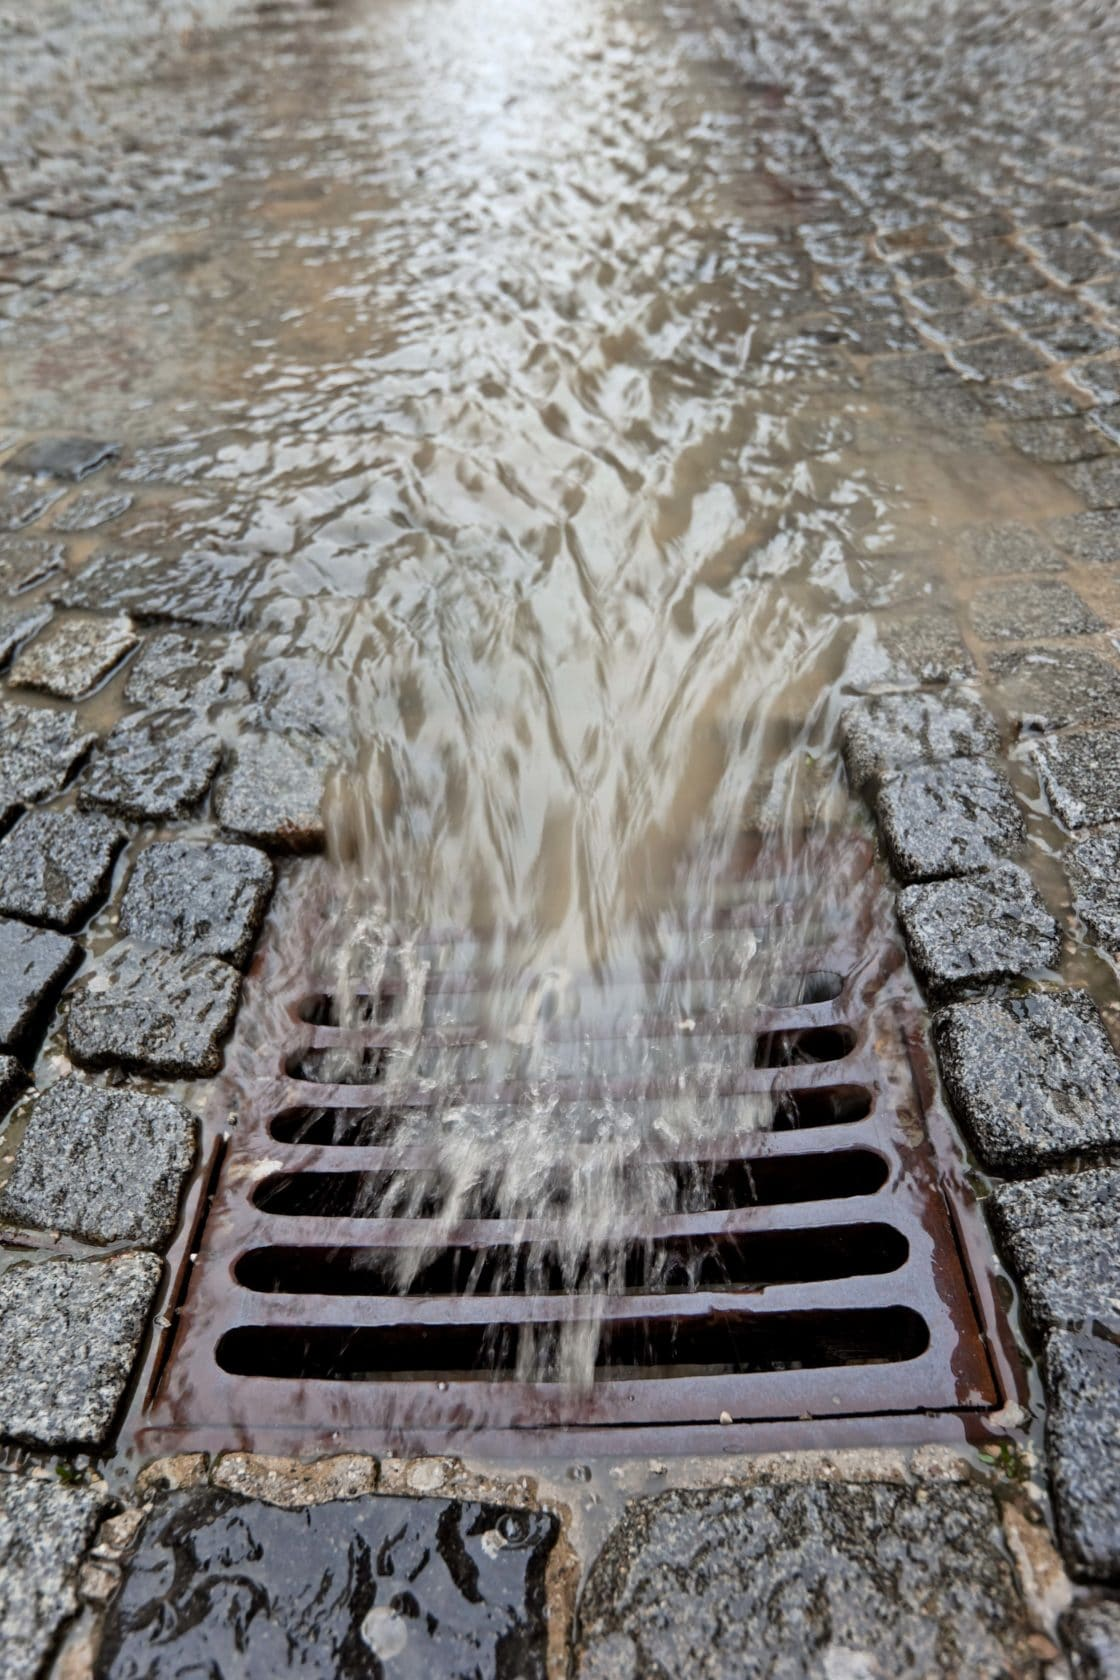 storm water Stormwater runoff we issue various water quality permits that aim to control urban and stormwater runoff from industries, construction sites, cities, counties, ports, state highways, and boatyards get involved in improving water quality.